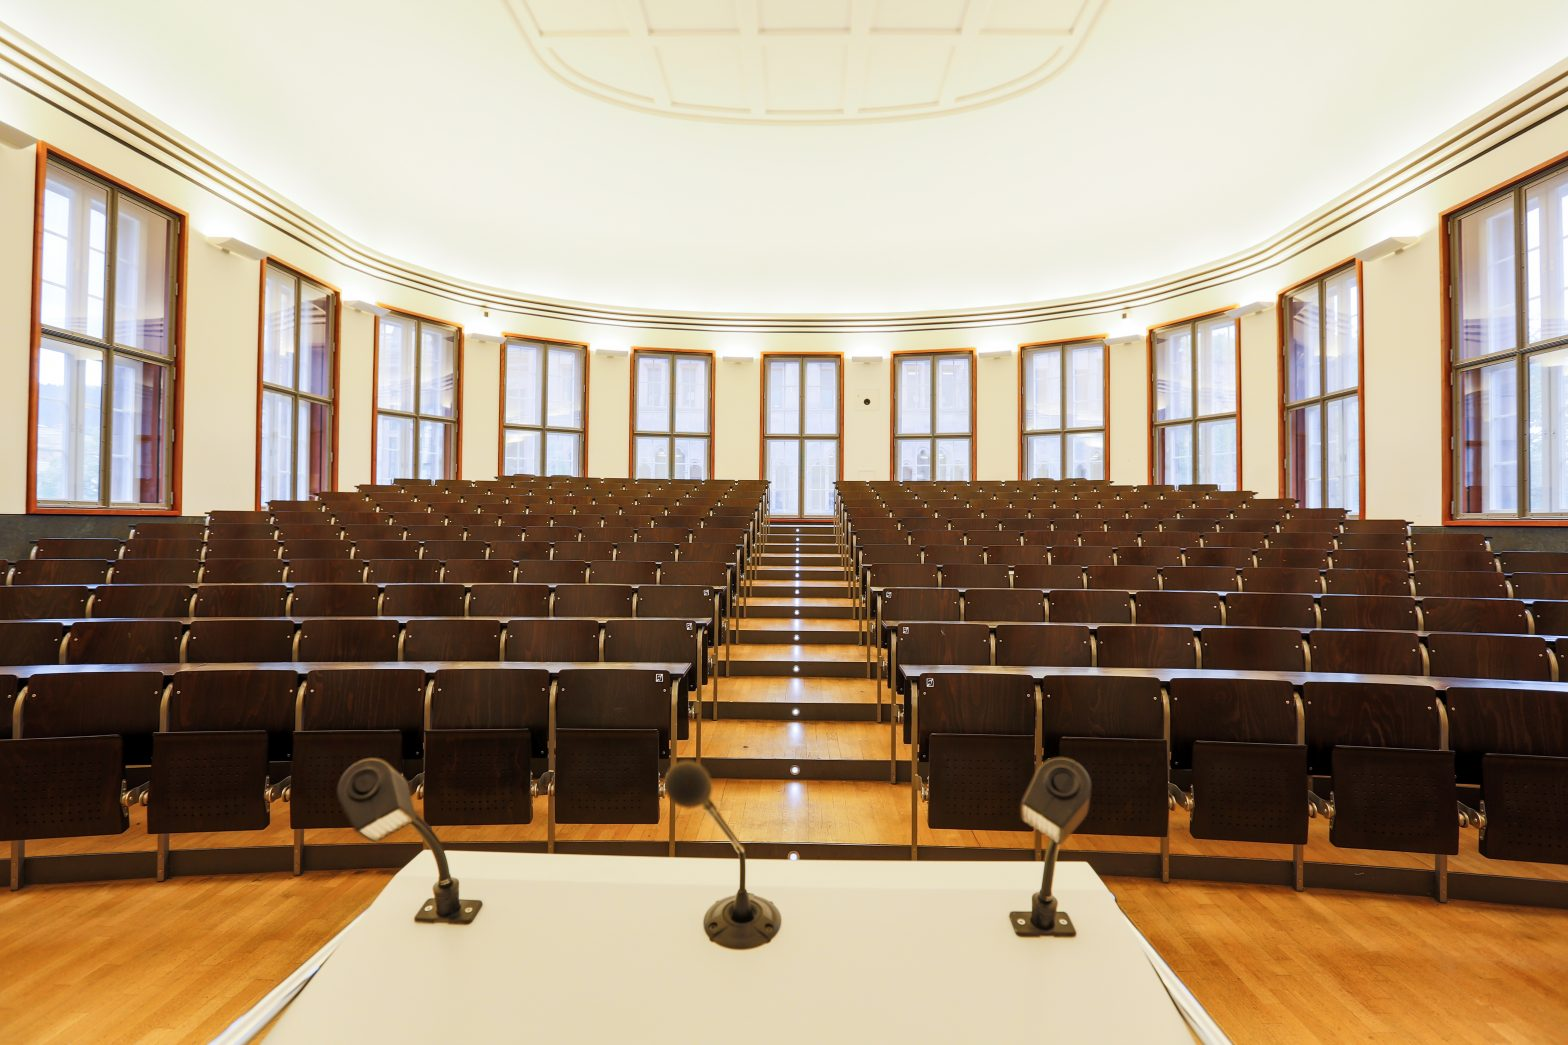 Lecture hall at the university of Freiburg